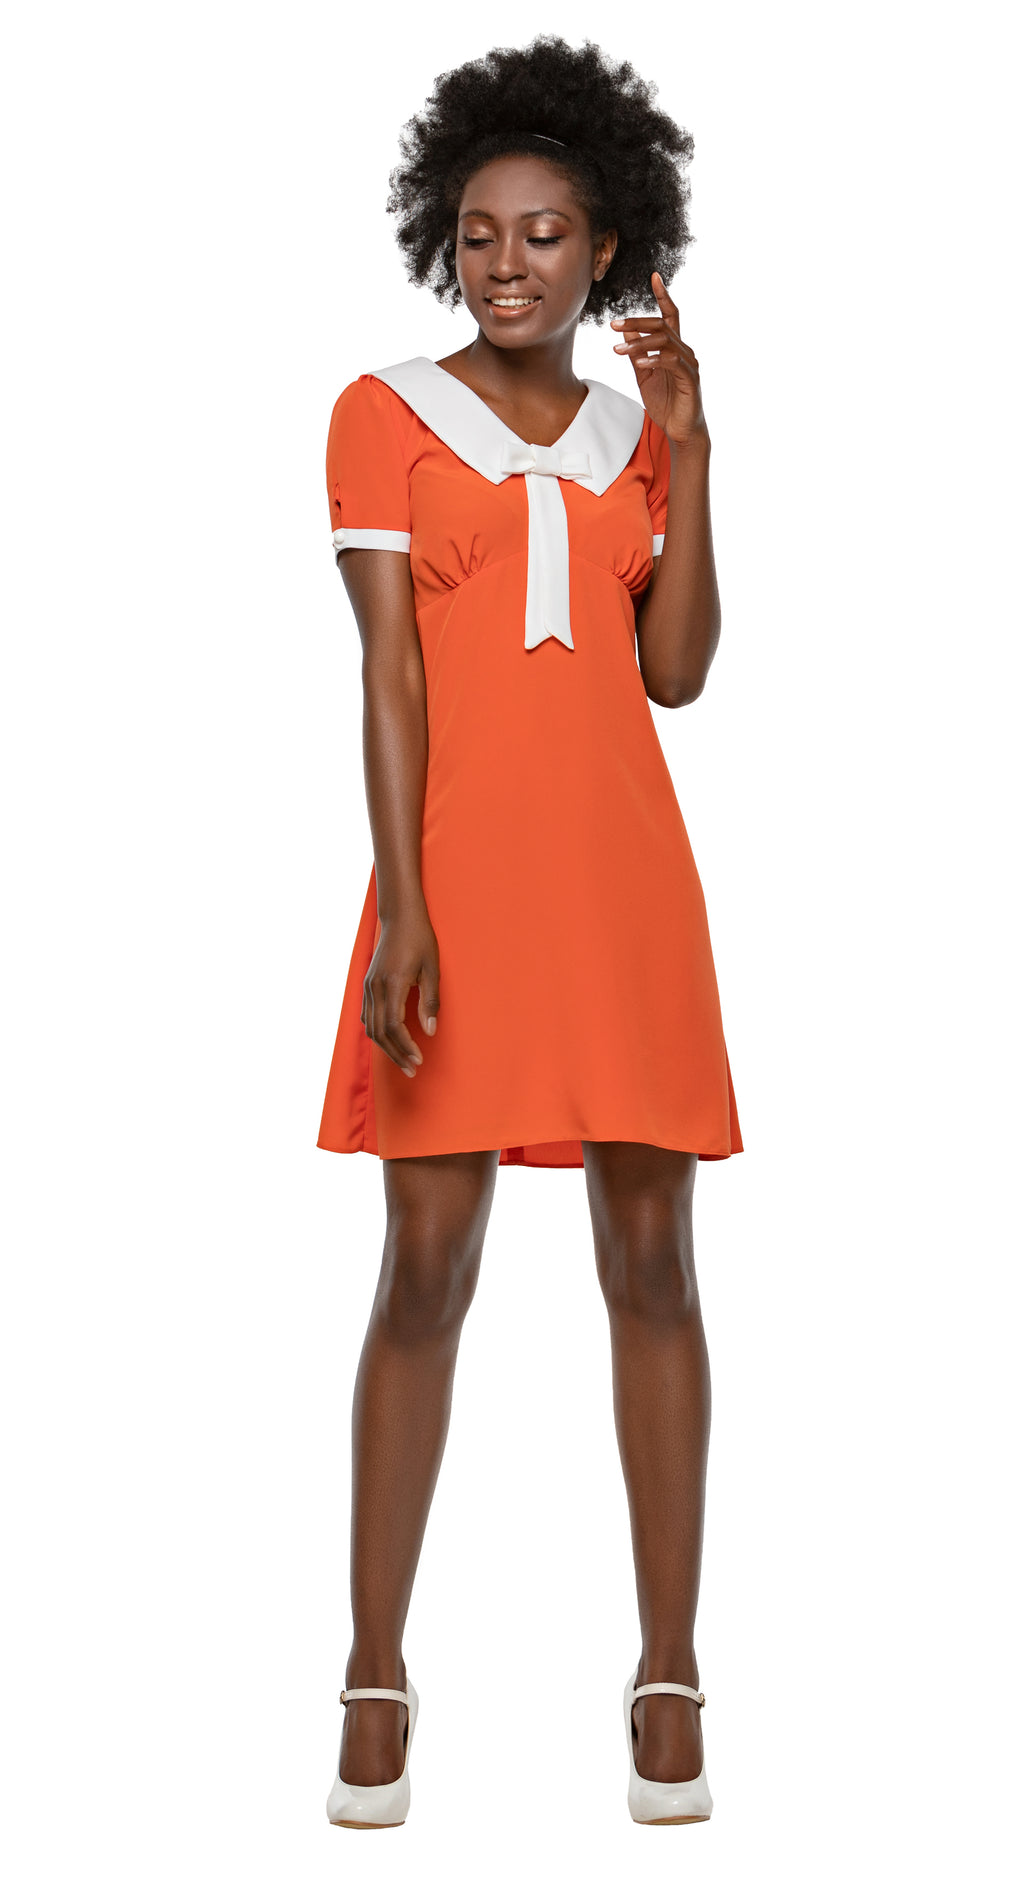 MARMALADE 60s Style Dress with Collar and Bow in Orange